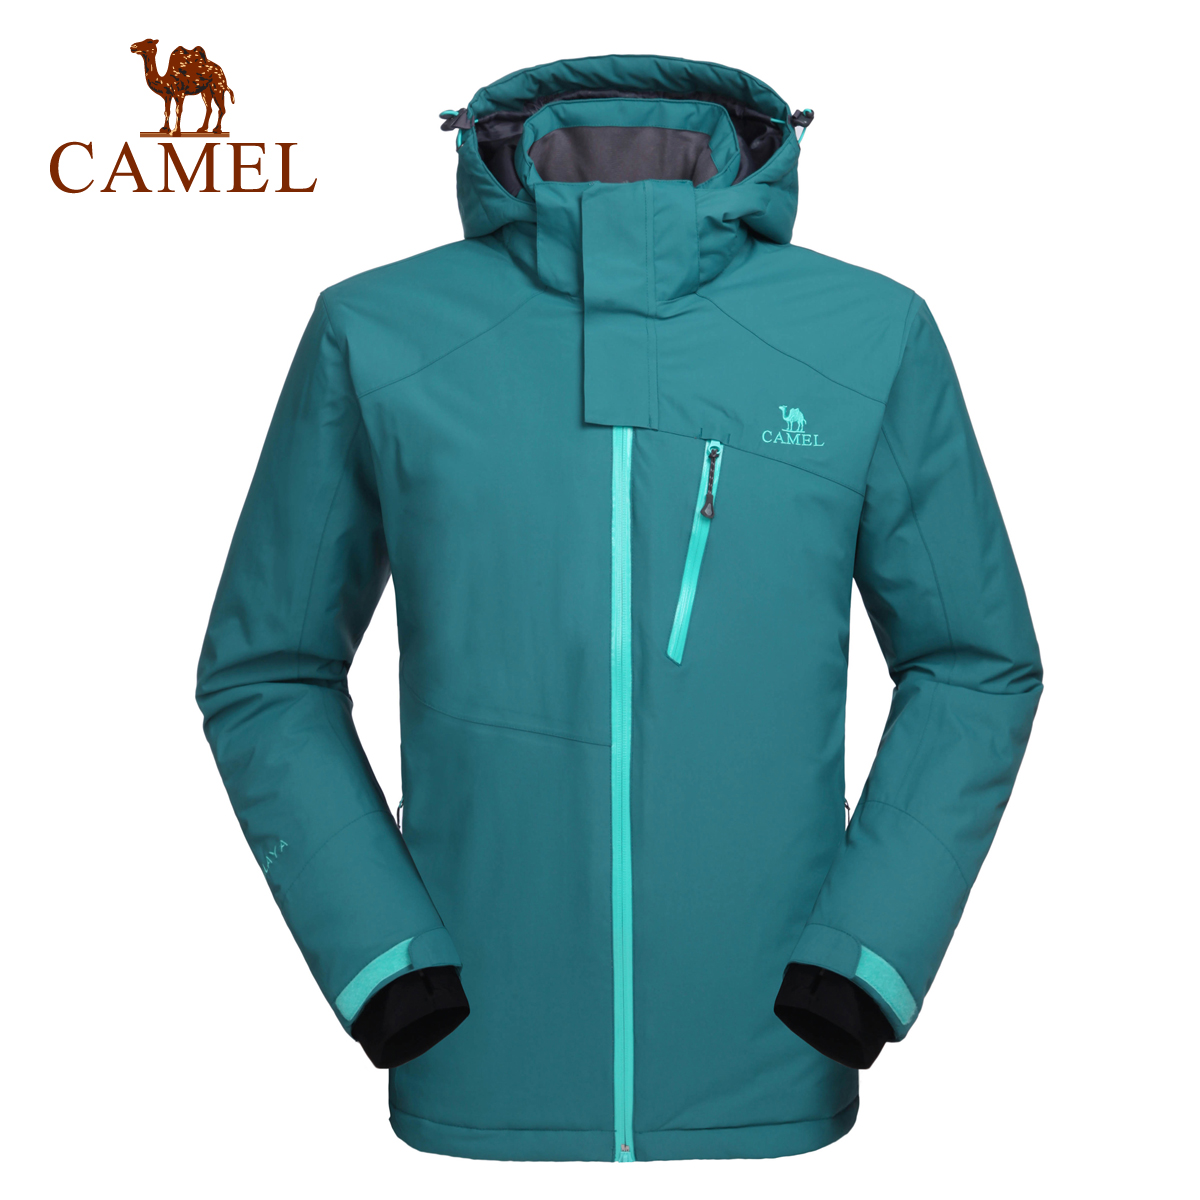 [Clearance Special] Camel outdoor men's ski suit Autumn and winter fashion jacket windproof hat warm ski suit